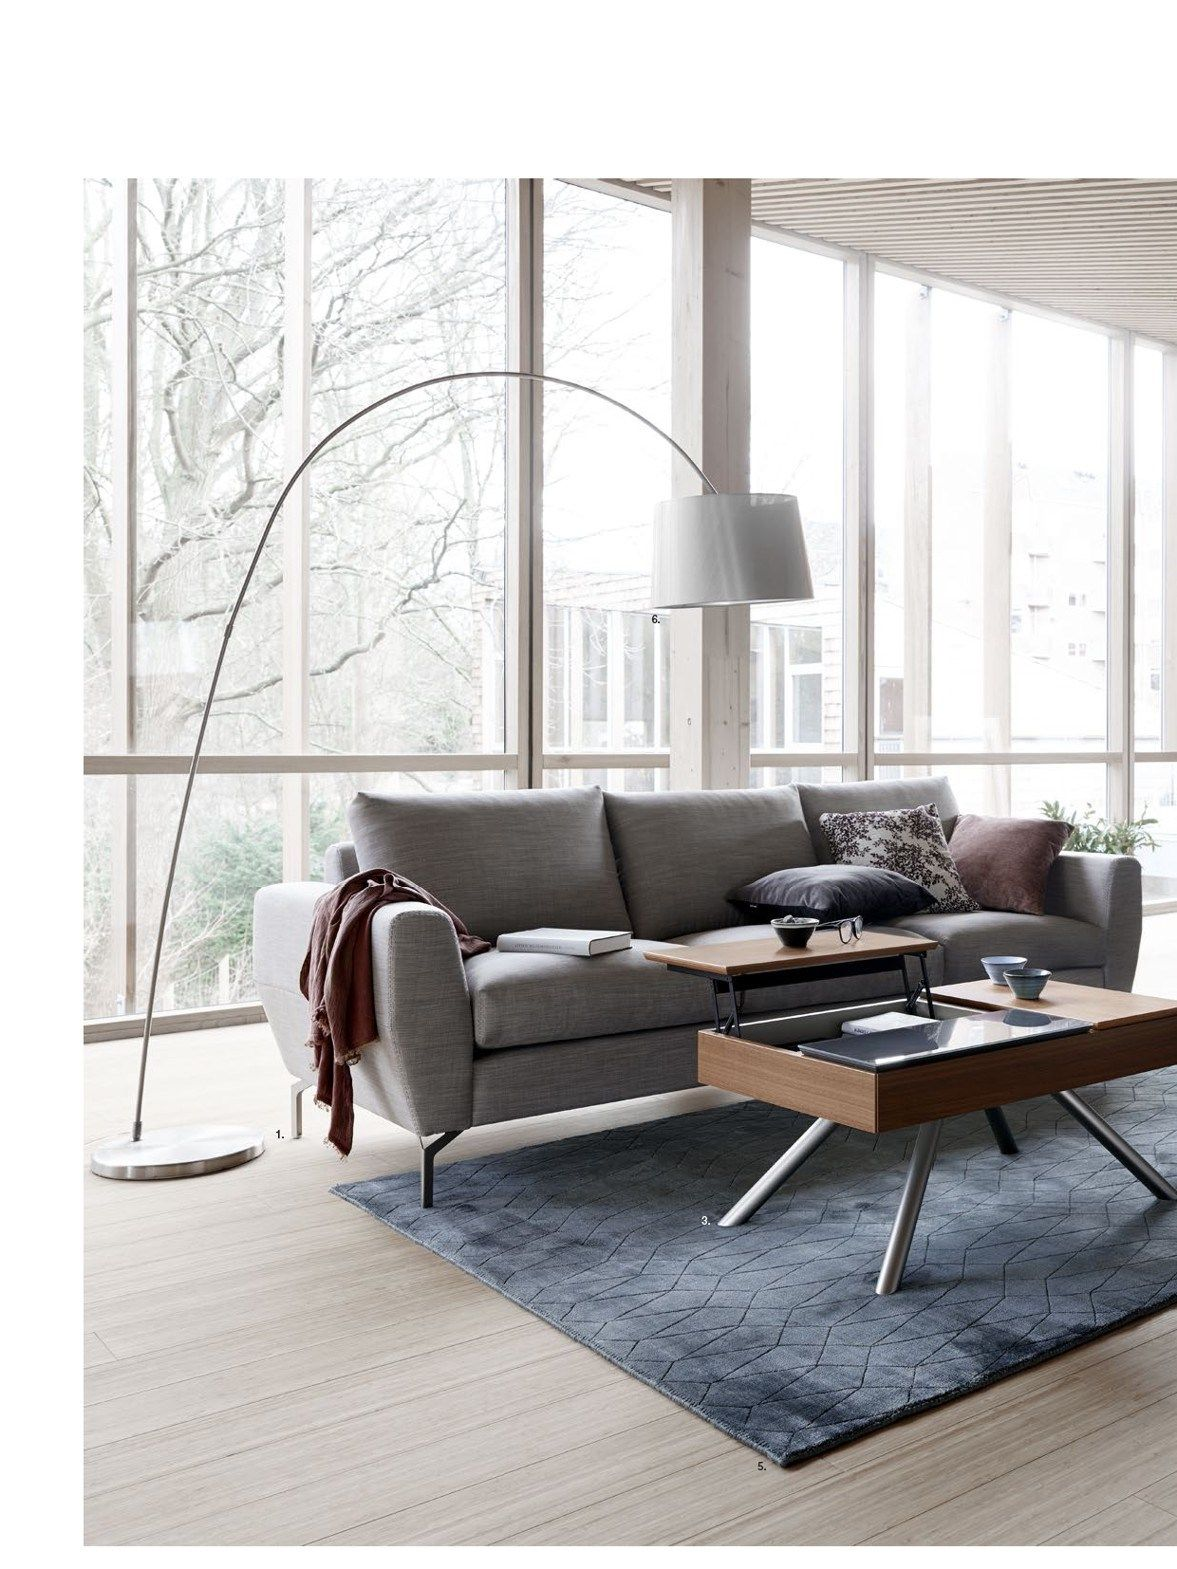 Www Boconcept Fr Boconcept Lu 2017 Furniture Design Furniture Boconcept